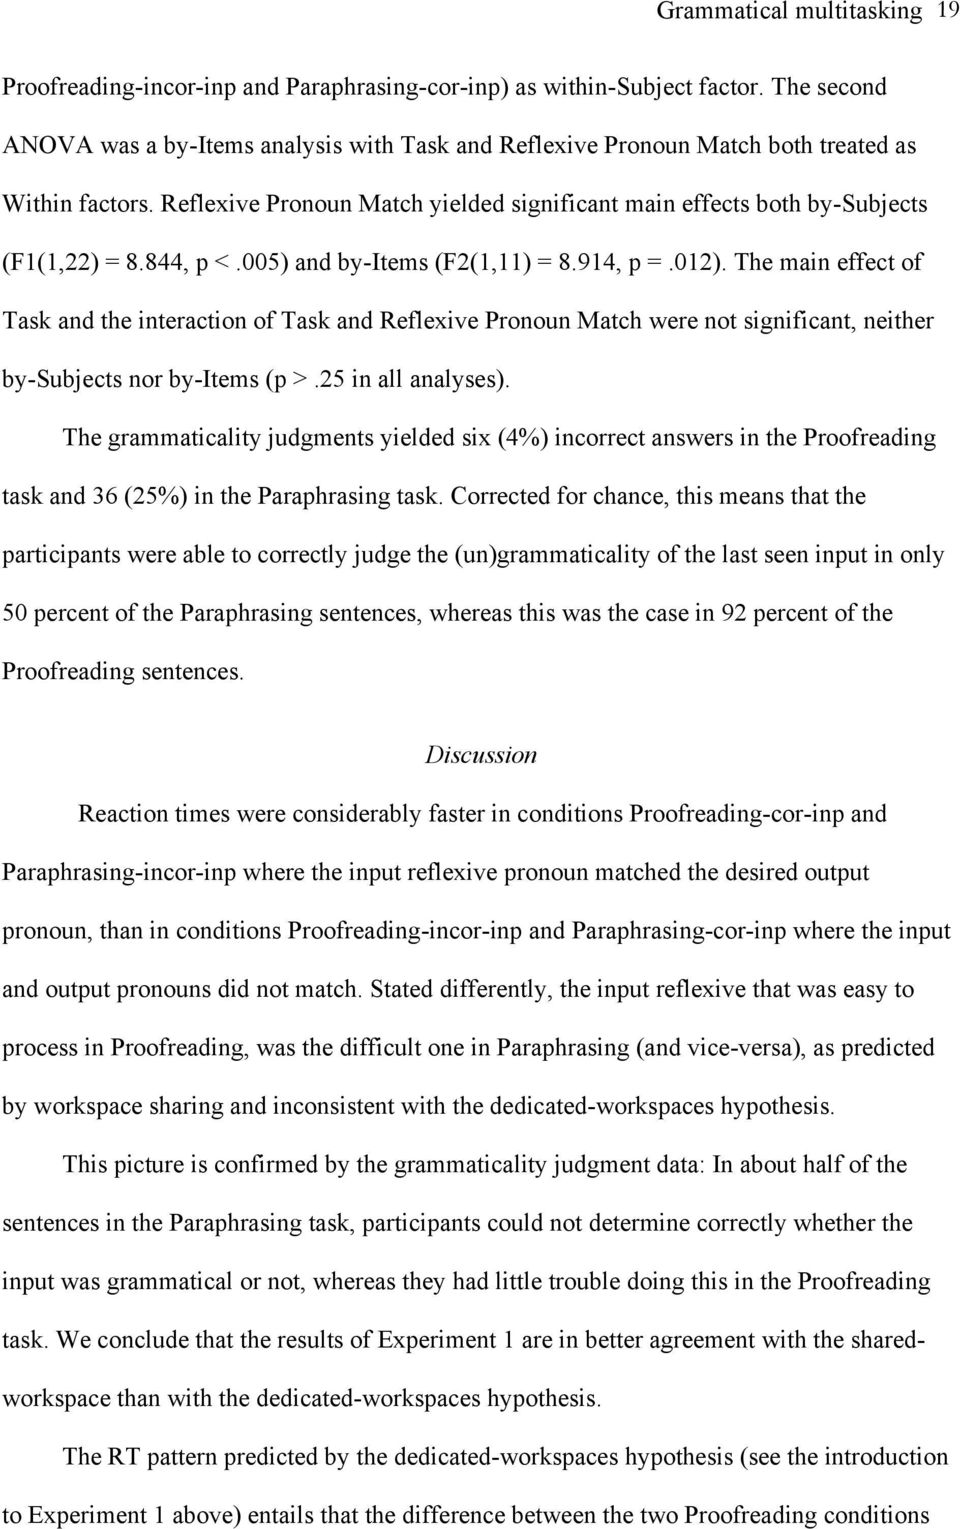 844, p <.005) and by-items (F2(1,11) = 8.914, p =.012). The main effect of Task and the interaction of Task and Reflexive Pronoun Match were not significant, neither by-subjects nor by-items (p >.